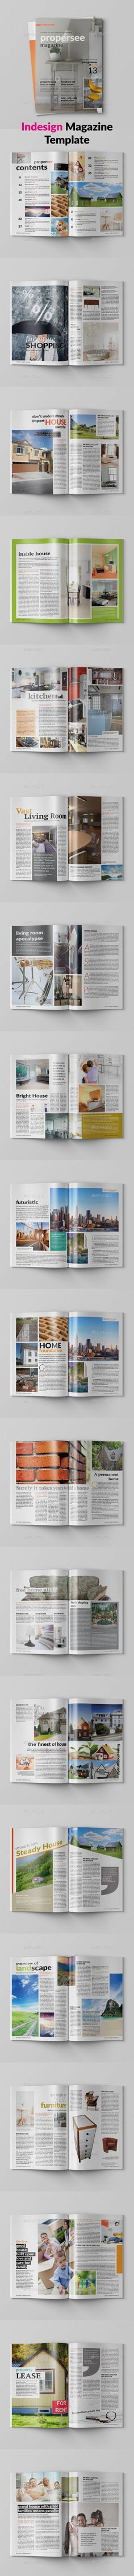 Interior, decor, archi, universal Magazine 40 pages, hi-quality design, Clean, professional and modern Magazine Layout template sa